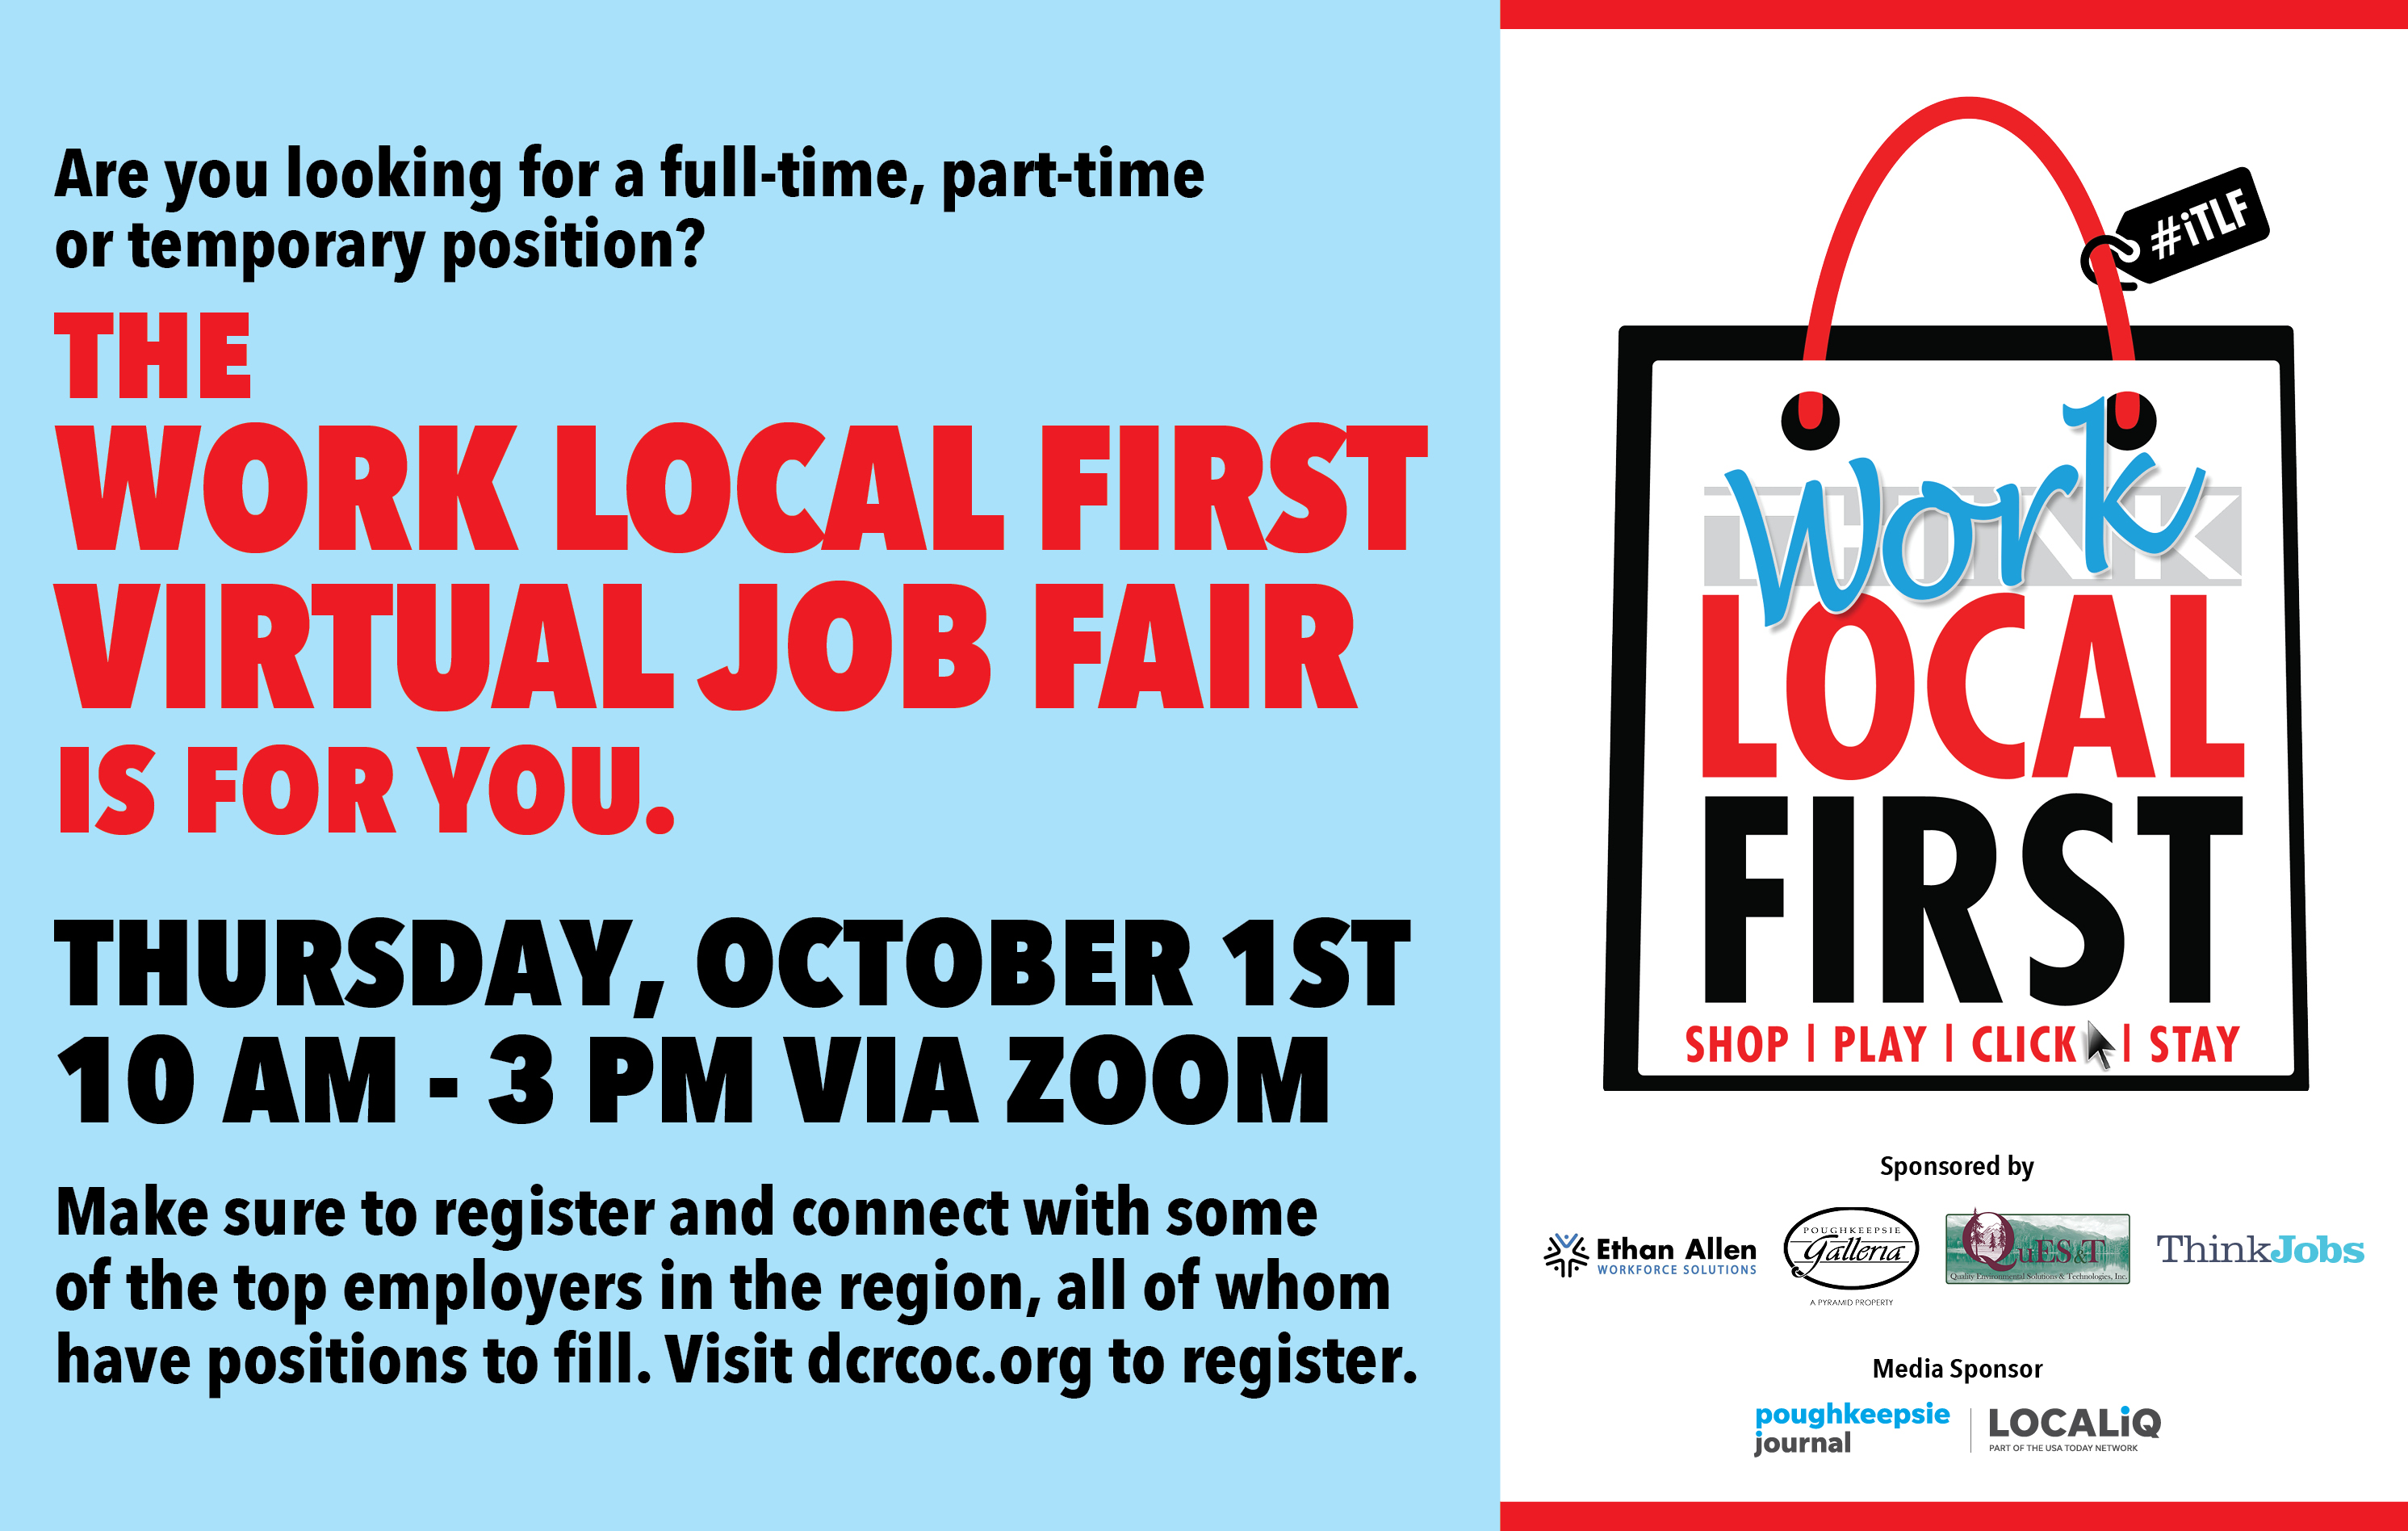 Work-Local-First-Job-Fair.jpg